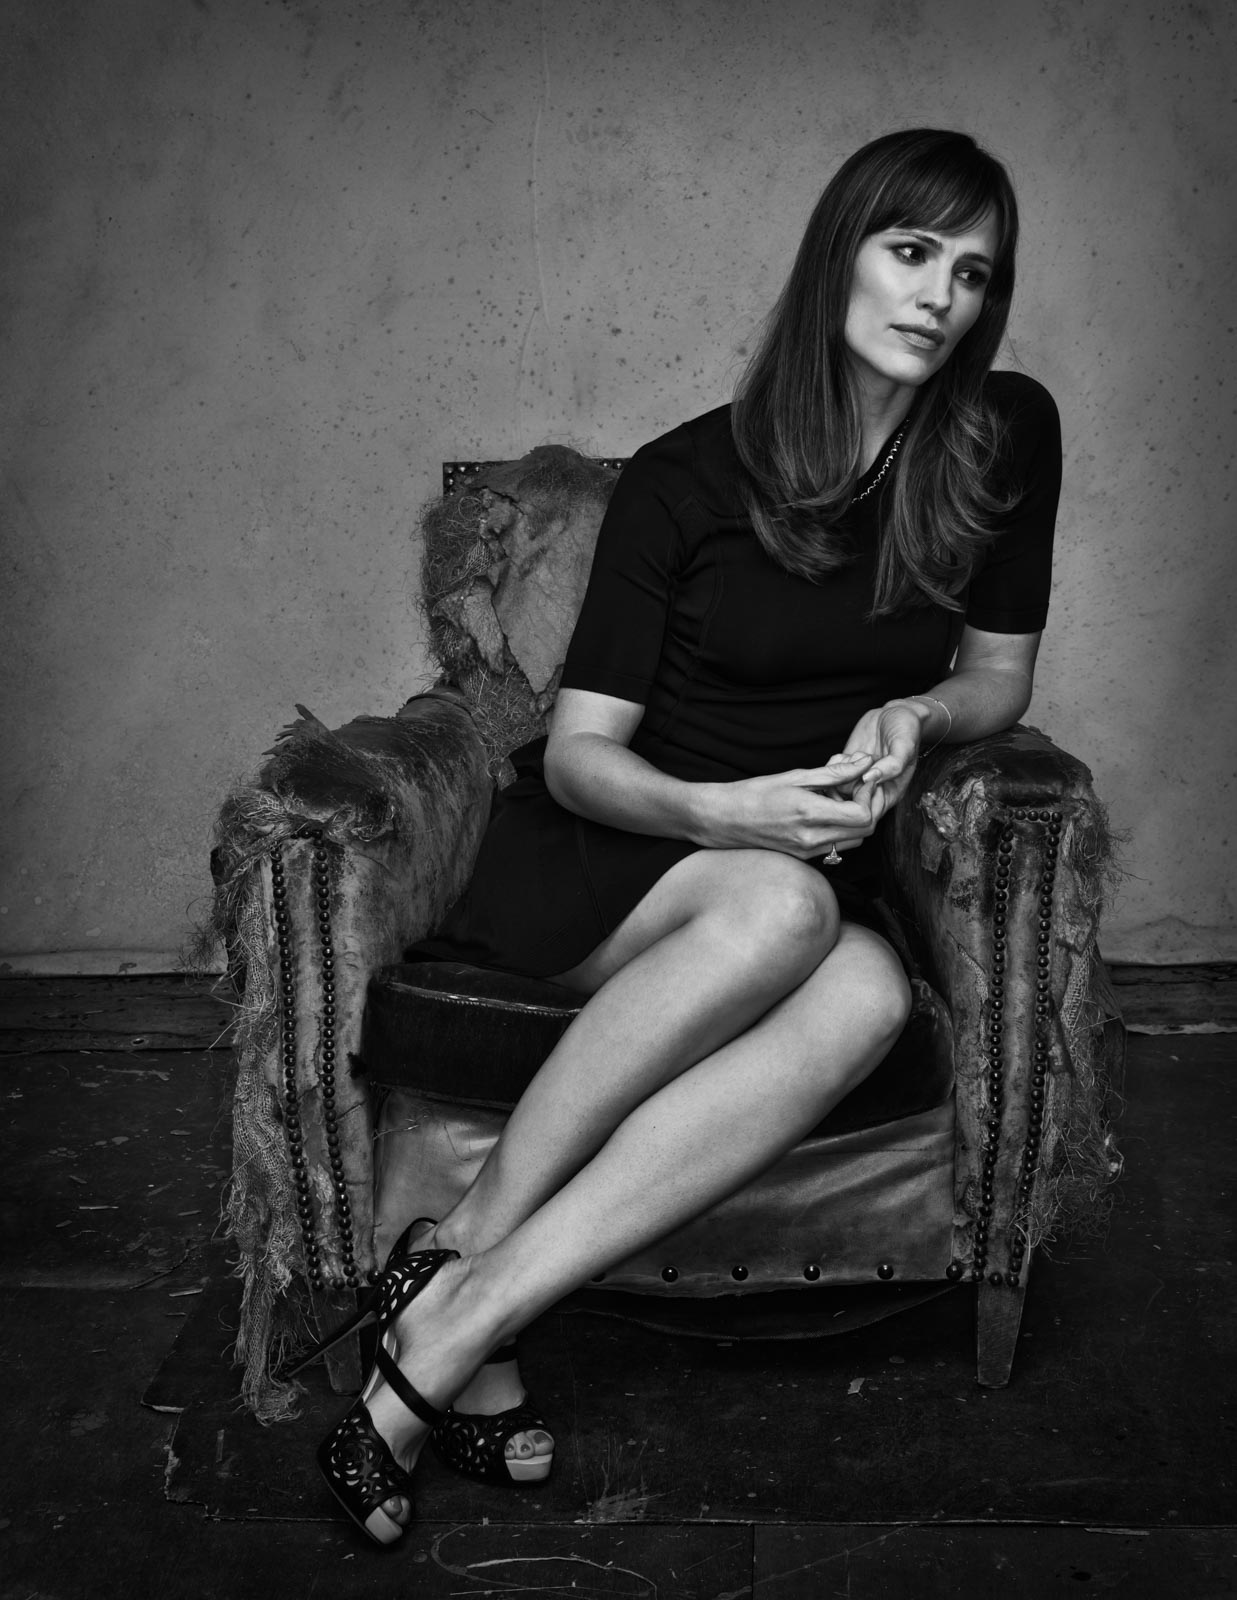 15-Jennifer Garner - Hollywood, CA - Variety Magazine